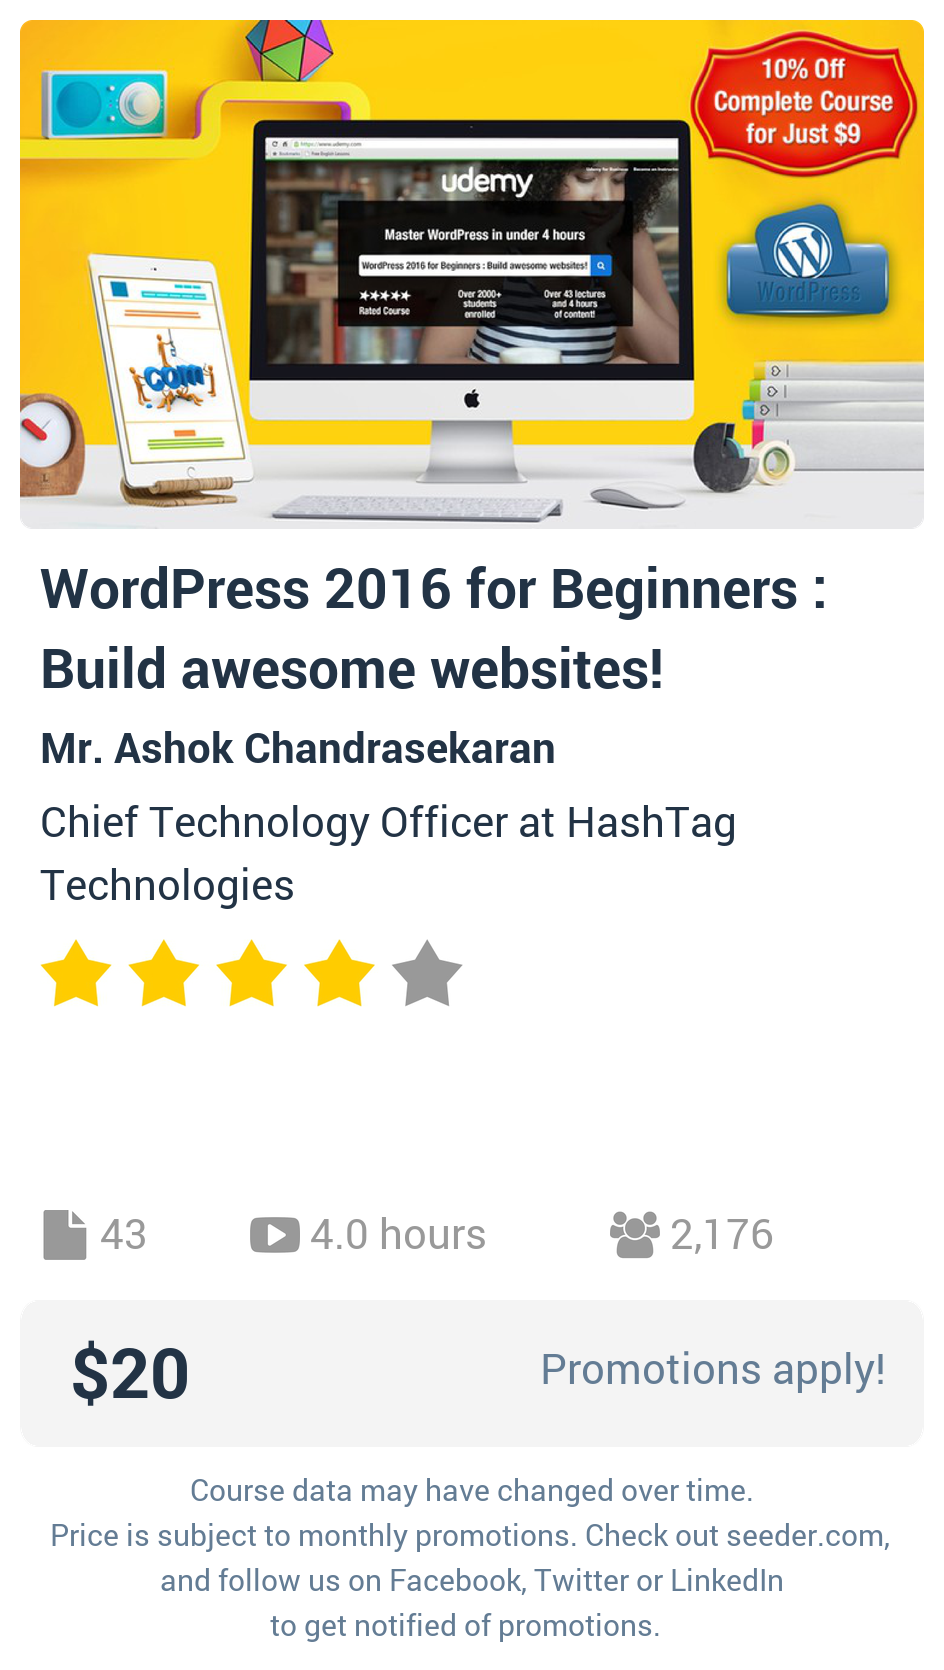 WordPress 2016 for Beginners : Build awesome websites! | Seeder offers perhaps the most dense collection of high quality online courses on the Internet. Over 13,800 courses, monthly discounts up to 92% off, and every course comes with a 30-day money back guarantee.